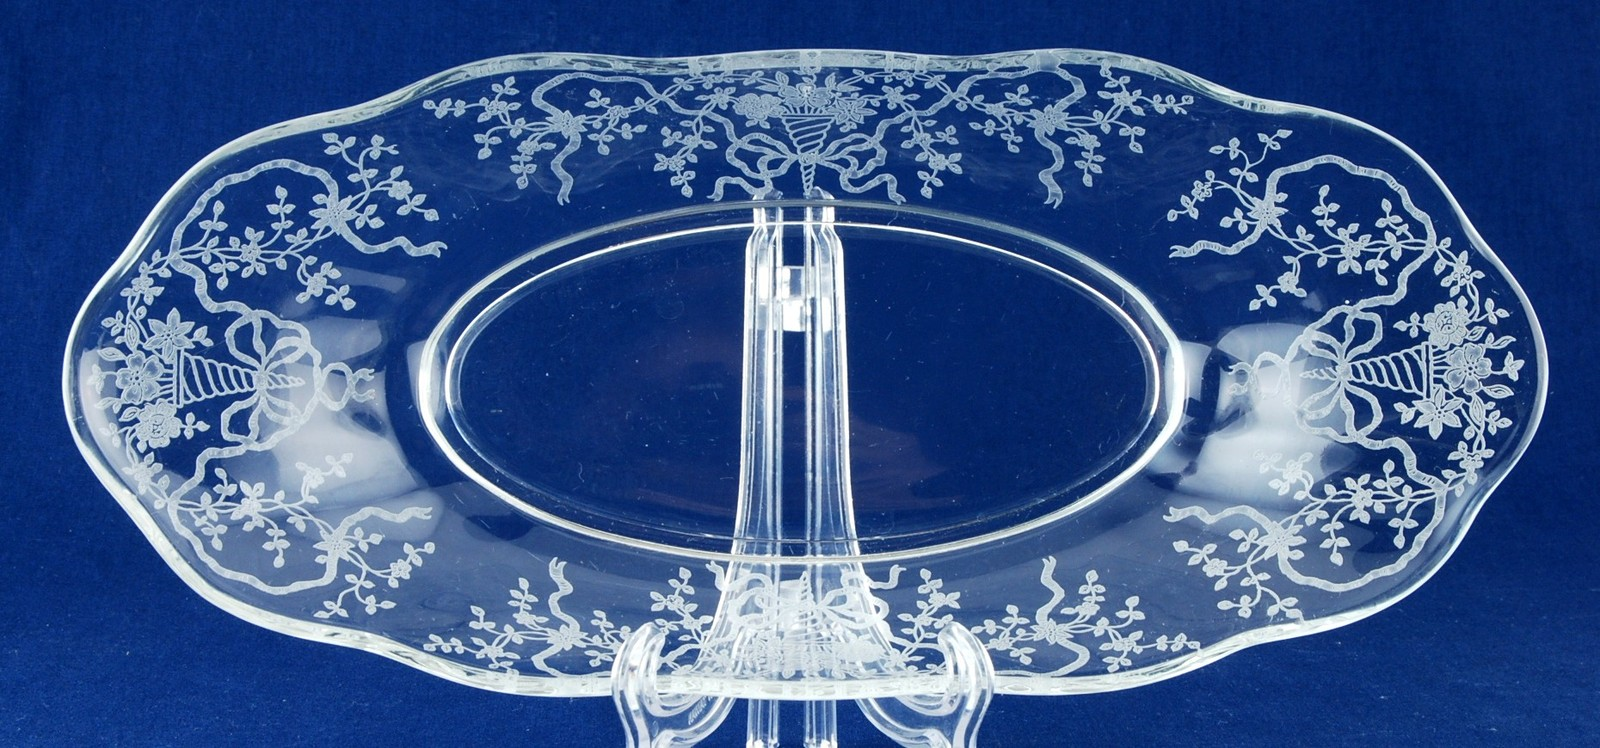 Fostoria Glass Co. Corsage Celery Dish Clear Etched Elegant